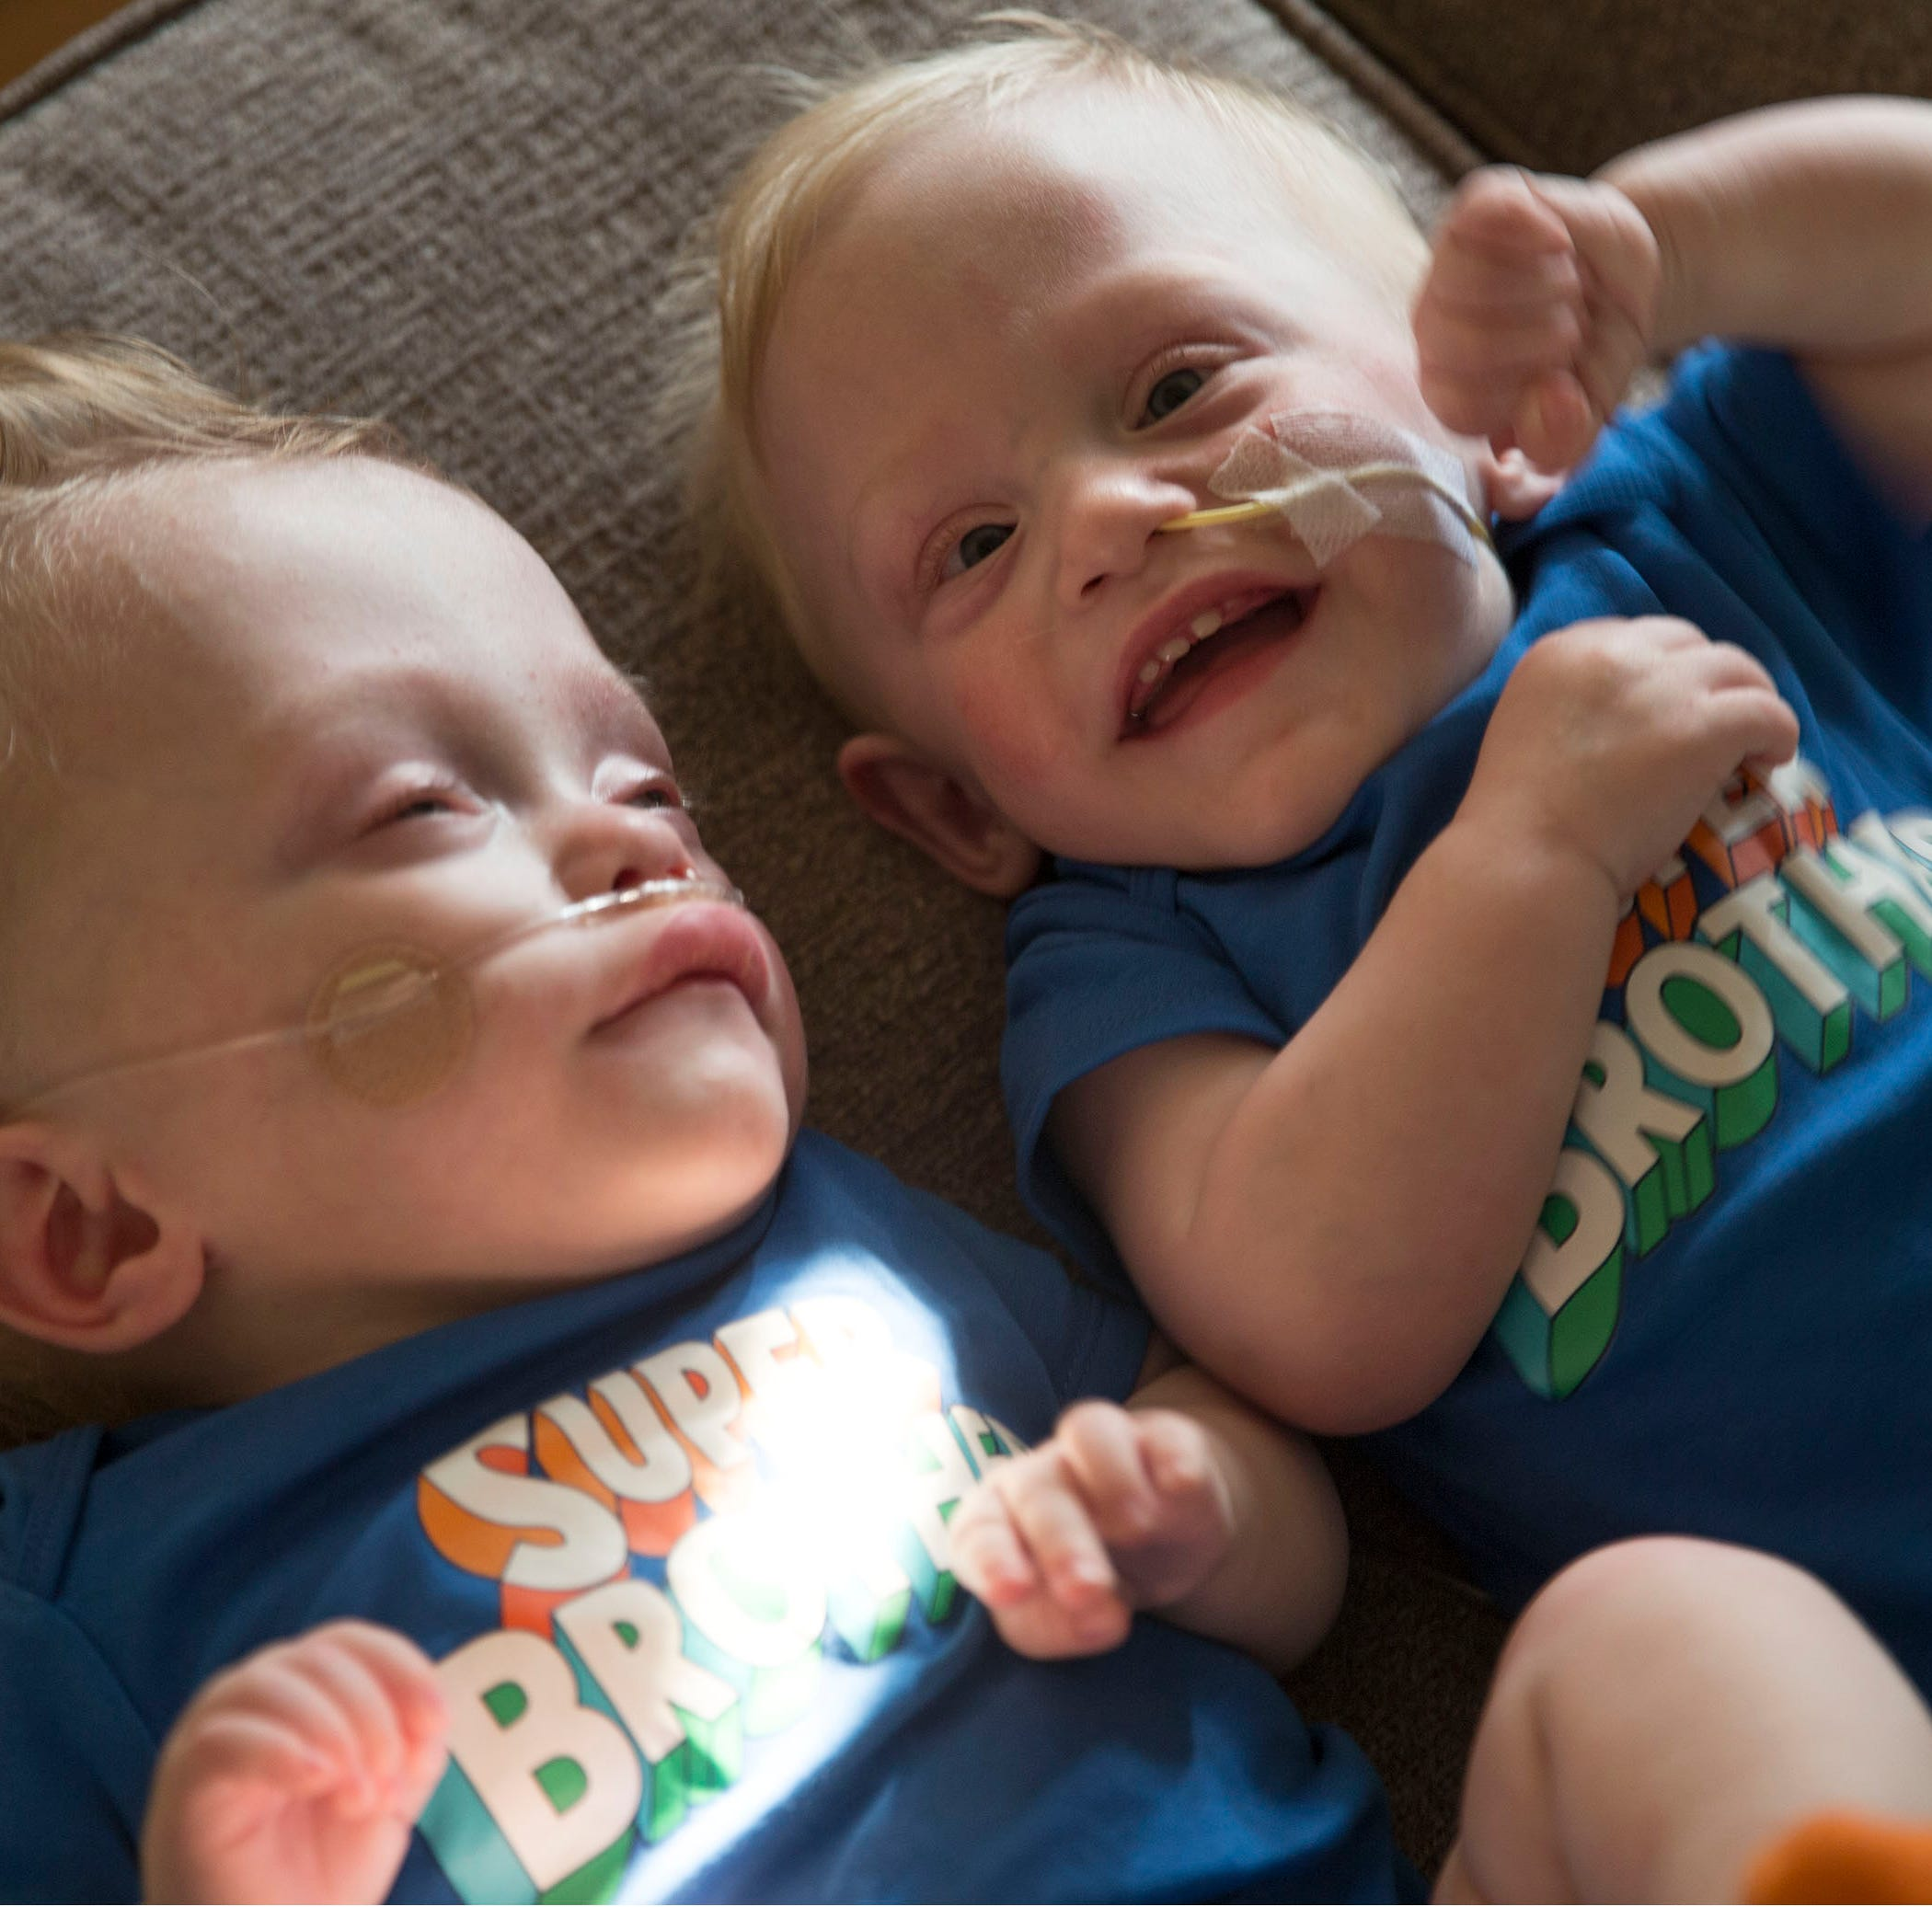 One year after ordeal with premature triplets, Beachwood family to receive courage award